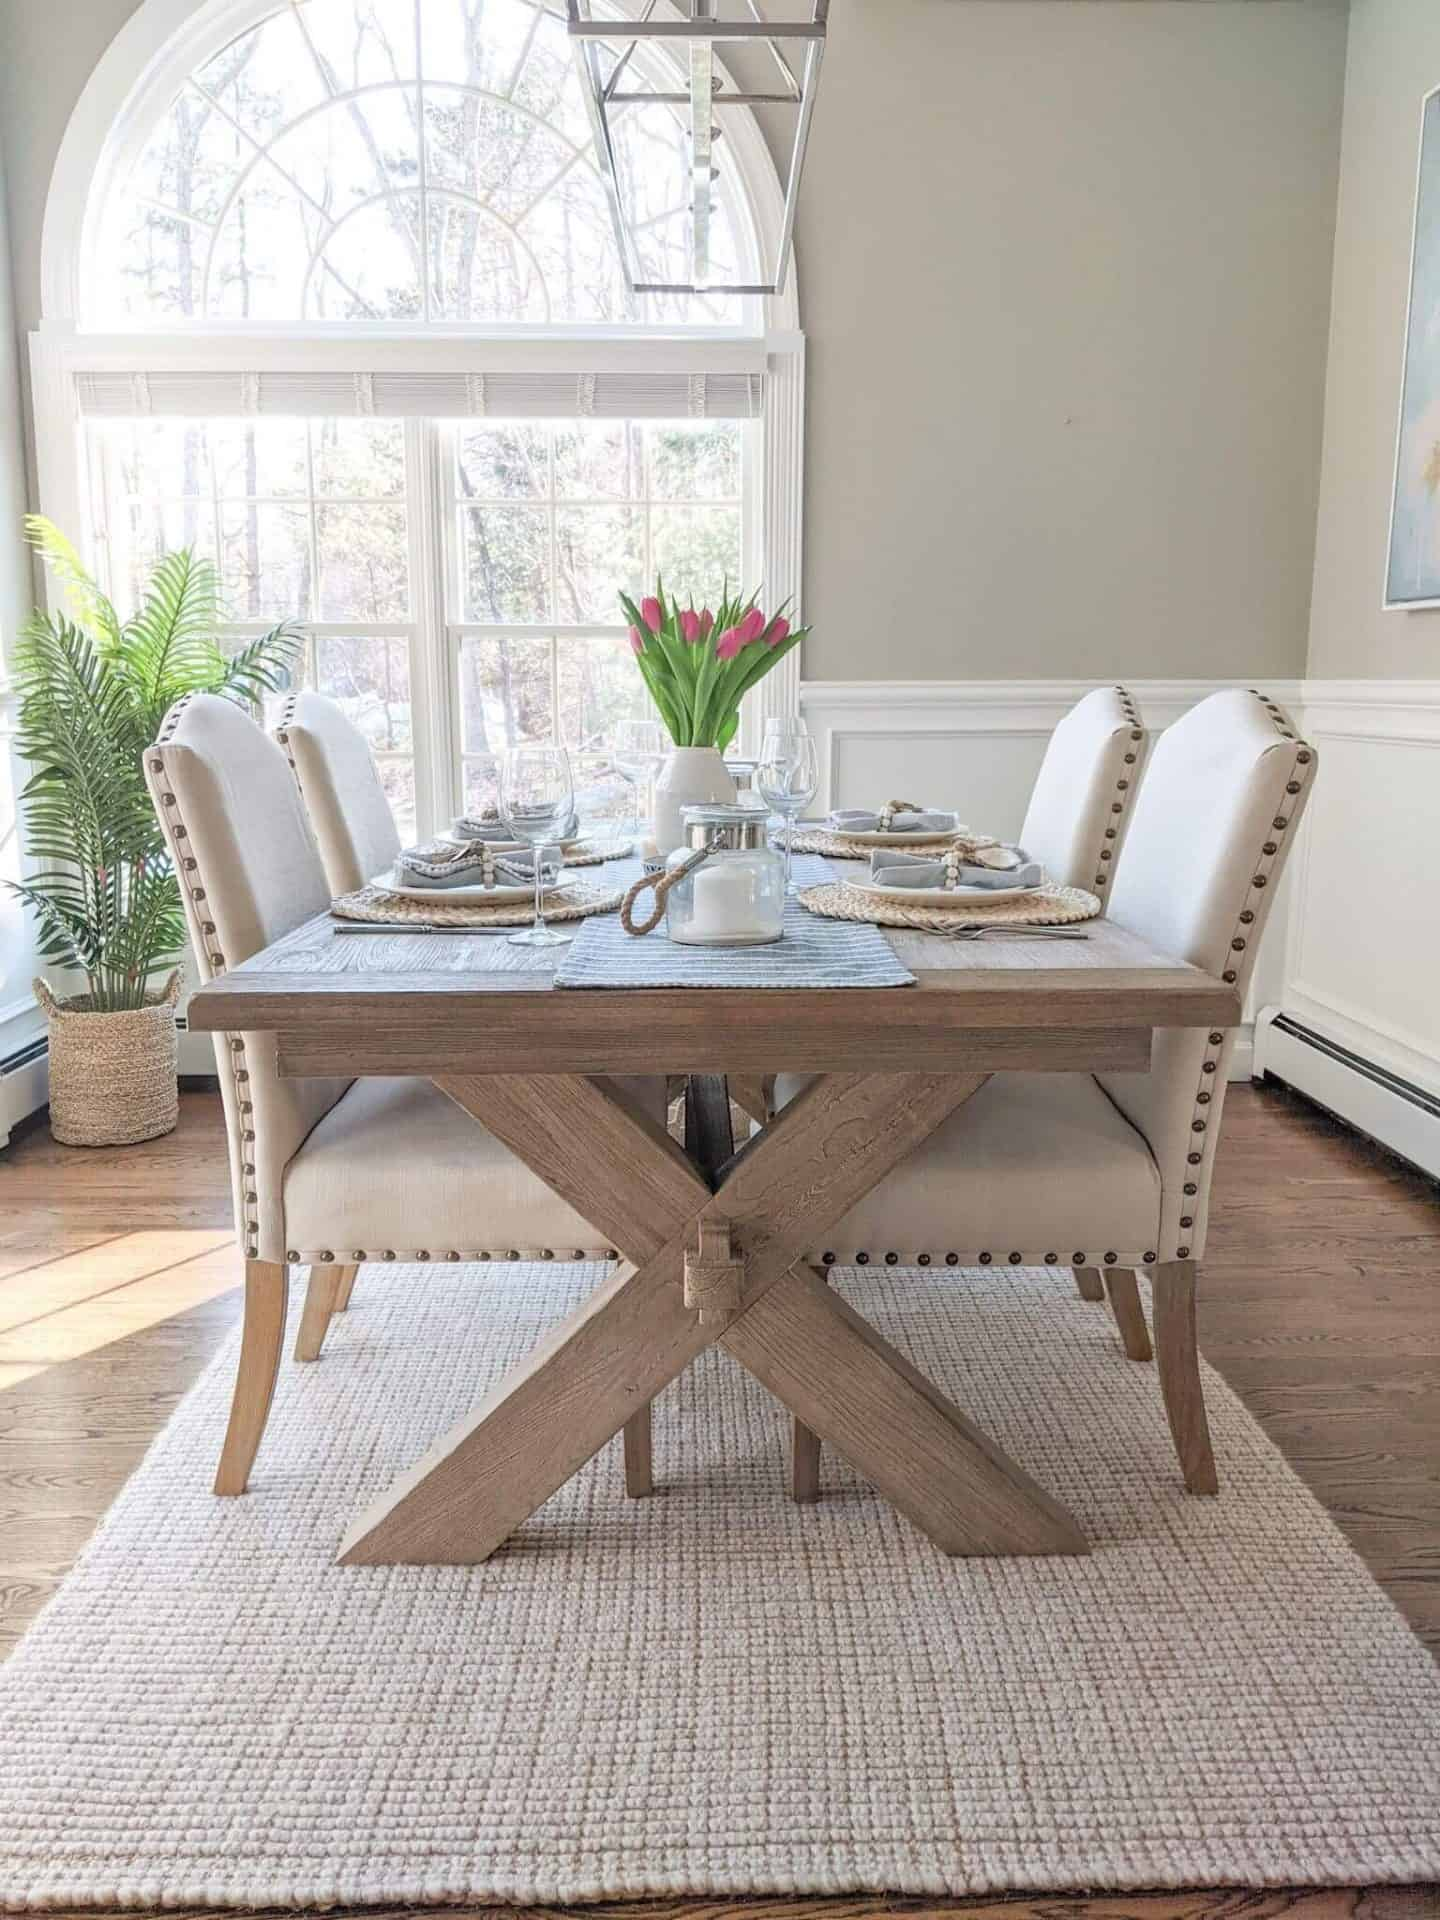 Casually Coastal Spring Dining Room Table - Decorating For Easter - Simple table design with neutral spring colors